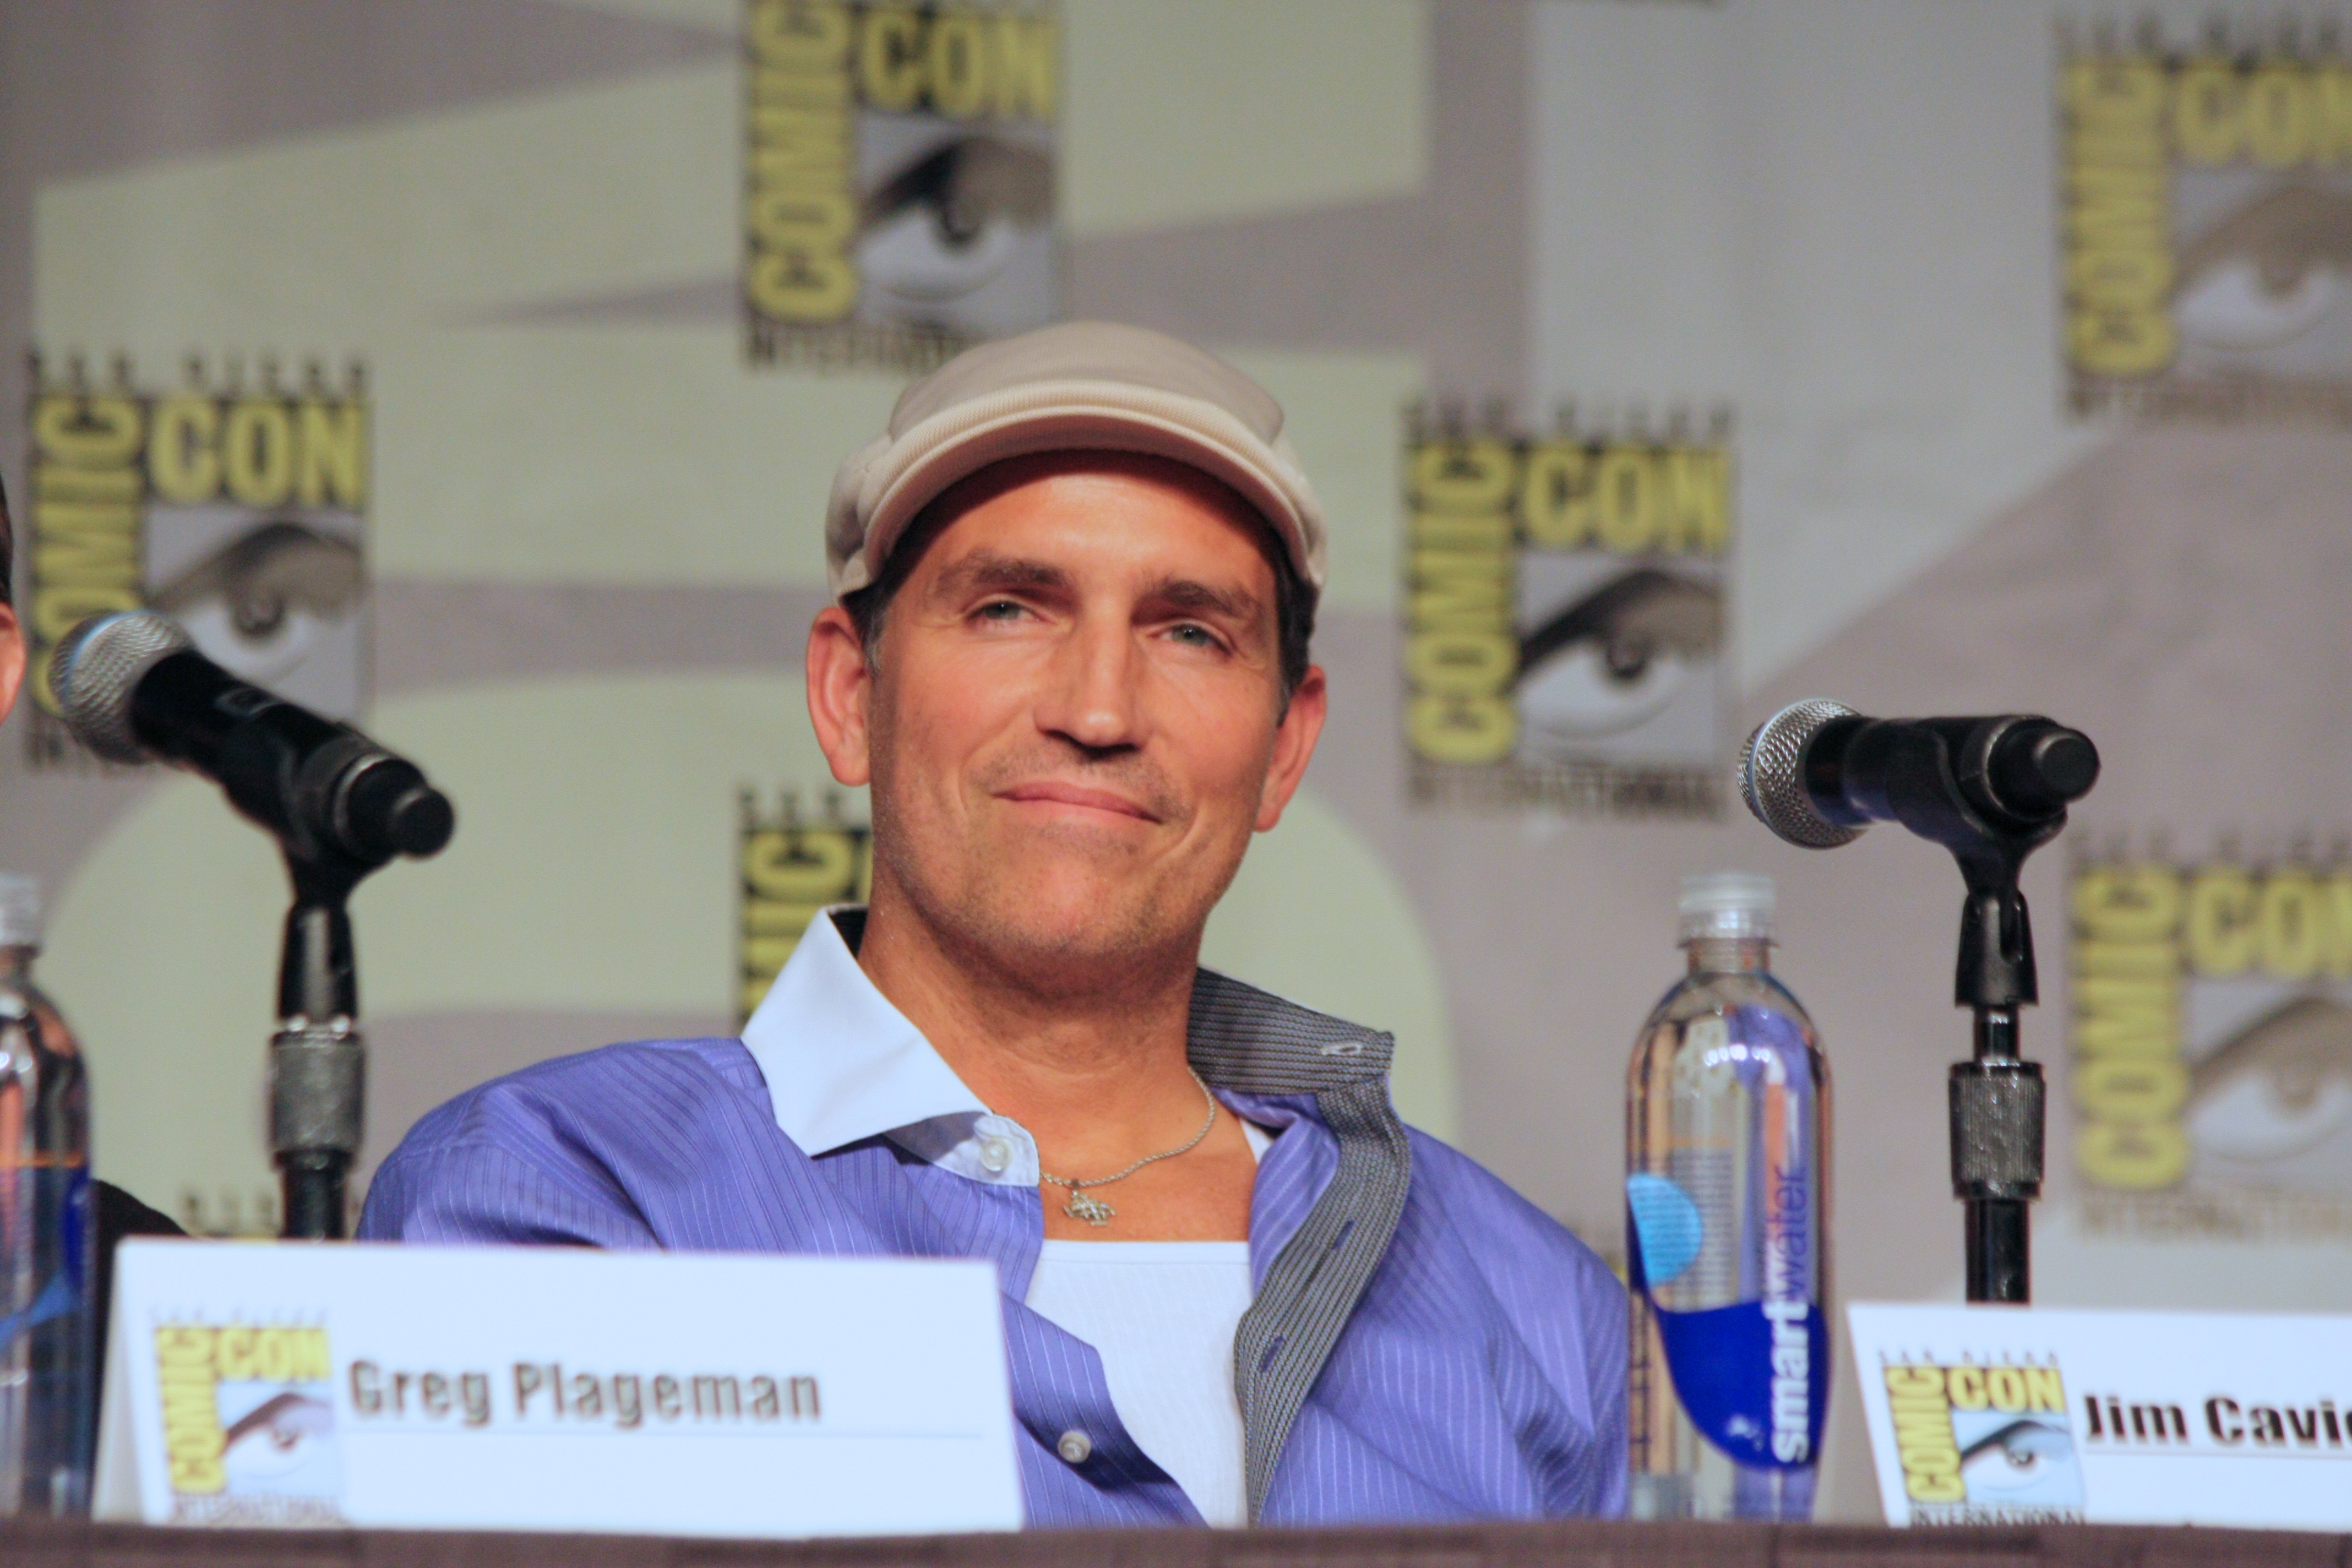 Jim Caviezel to reprise Jesus role in Passion of the Christ sequel